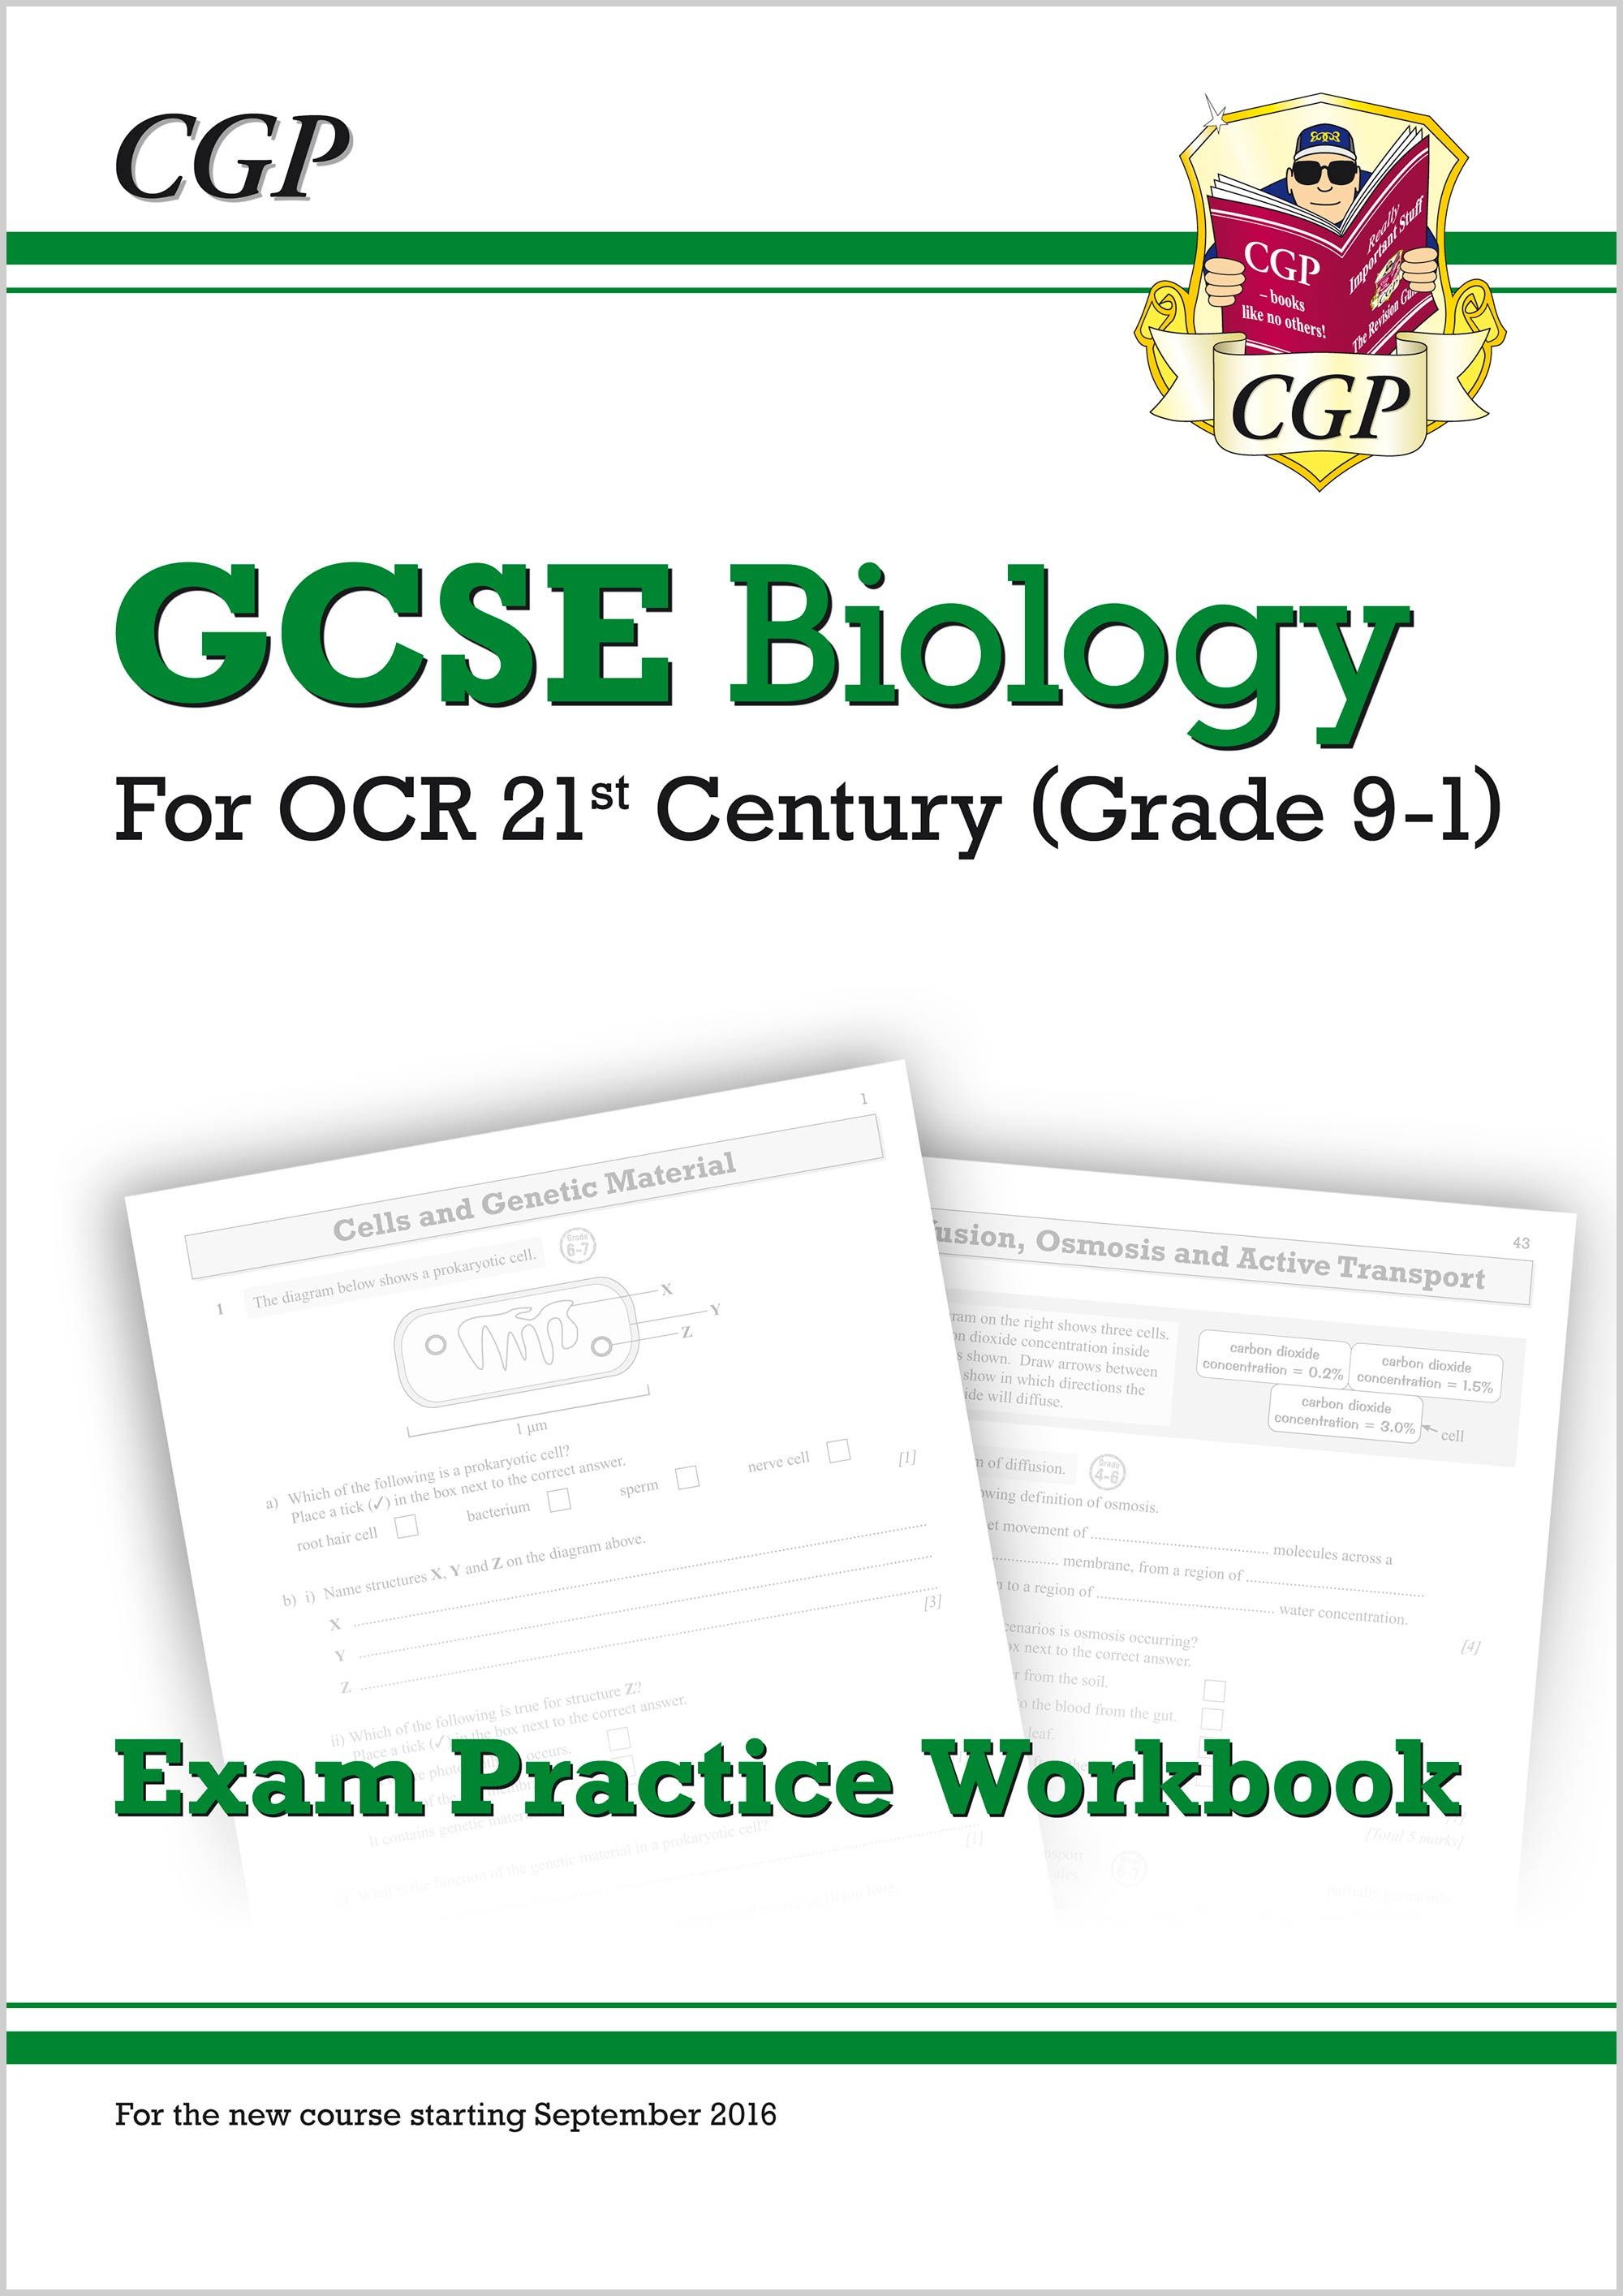 B2Q41 - New Grade 9-1 GCSE Biology: OCR 21st Century Exam Practice Workbook